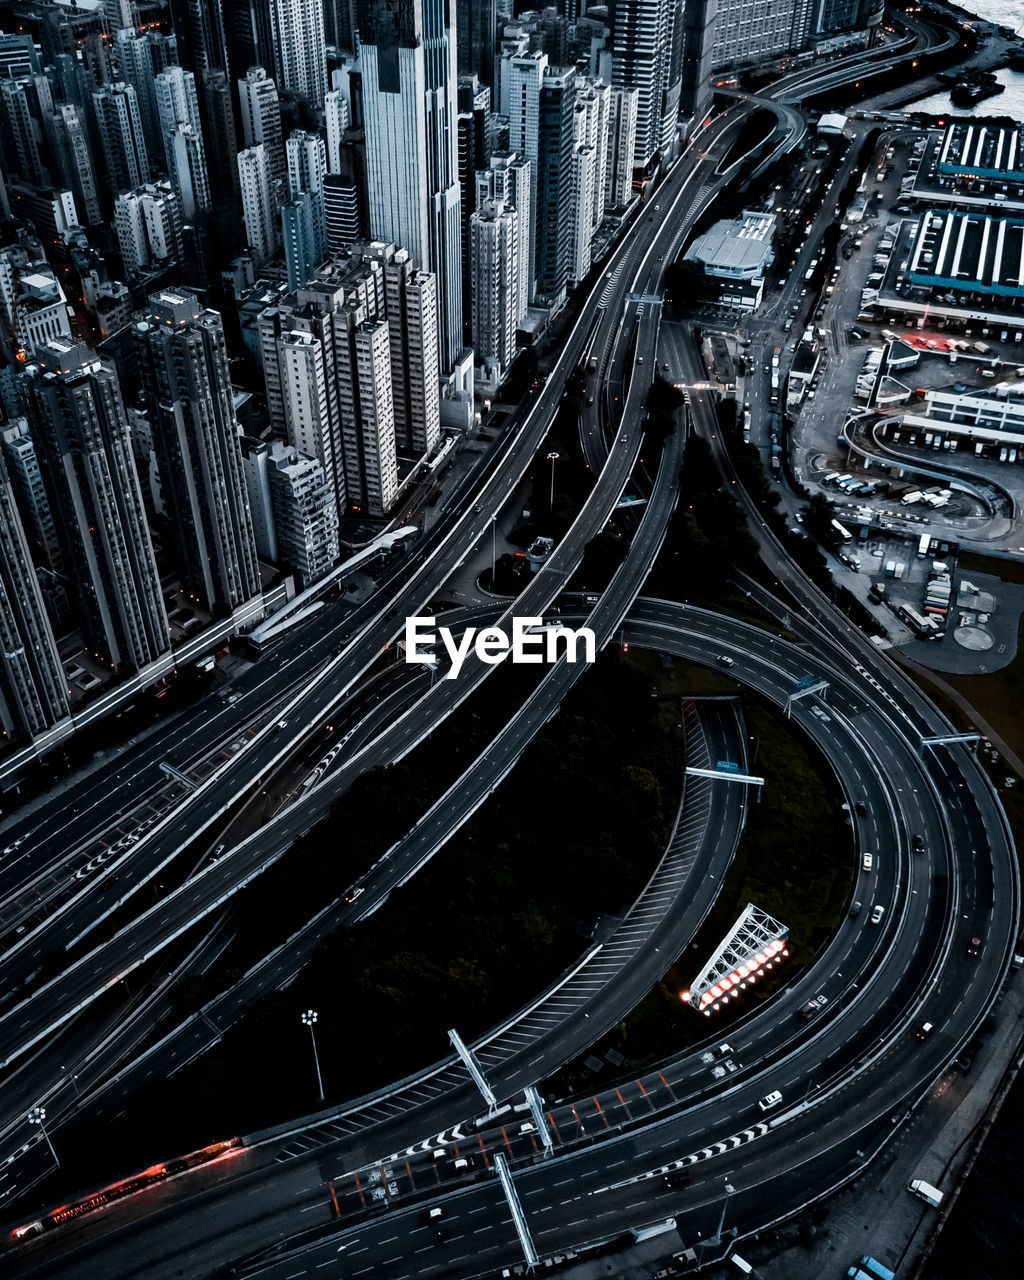 city, architecture, transportation, building exterior, built structure, cityscape, office building exterior, mode of transportation, highway, connection, road, motion, no people, high angle view, skyscraper, building, elevated road, city life, street, aerial view, modern, multiple lane highway, complexity, outdoors, financial district